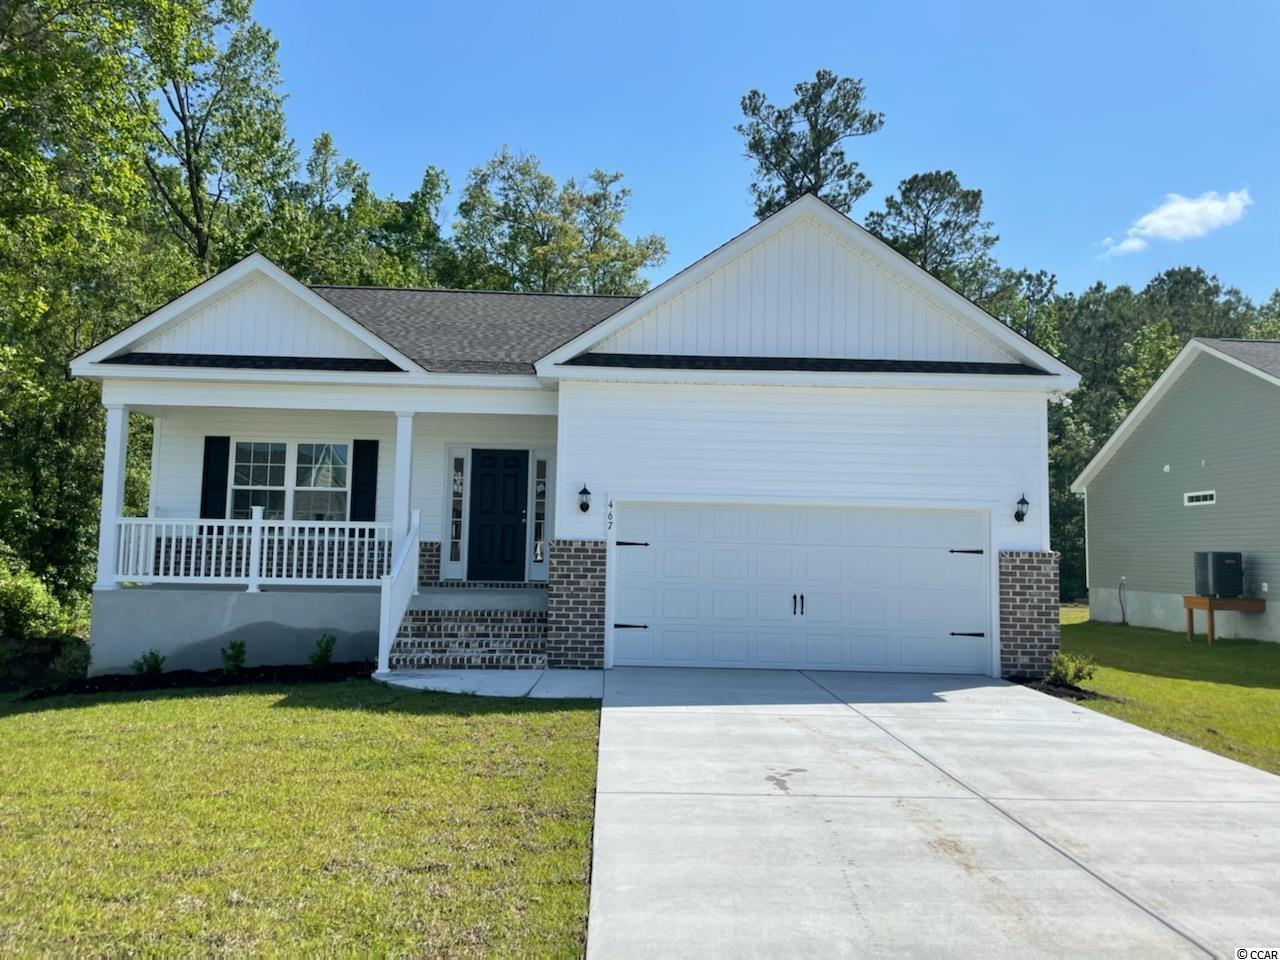 This Busbee Model has it all! 3 Bedroomw 2 Baths with and a 2 Car Garage. at 1416 Sq Ft.  This Open concept home with a modern design sits on a spacious lot. The floor plan features lots of windows and 9ft. ceilings With vaults allowing natural light to flow in. The living and dining rooms are adjacent to the large kitchen and breakfast barwhich makes entertaining easy and effortless. This Kitchen includes Granite Countertops, Benton White painted cabinets, and stainless appliances. Come see all the insightful features designed with you and your lifestyle in mind. Beautiful and durable Waterproof Laminate Flooring throughout the entire plan. Pictures are of a similar home and are for illustration purposes only.